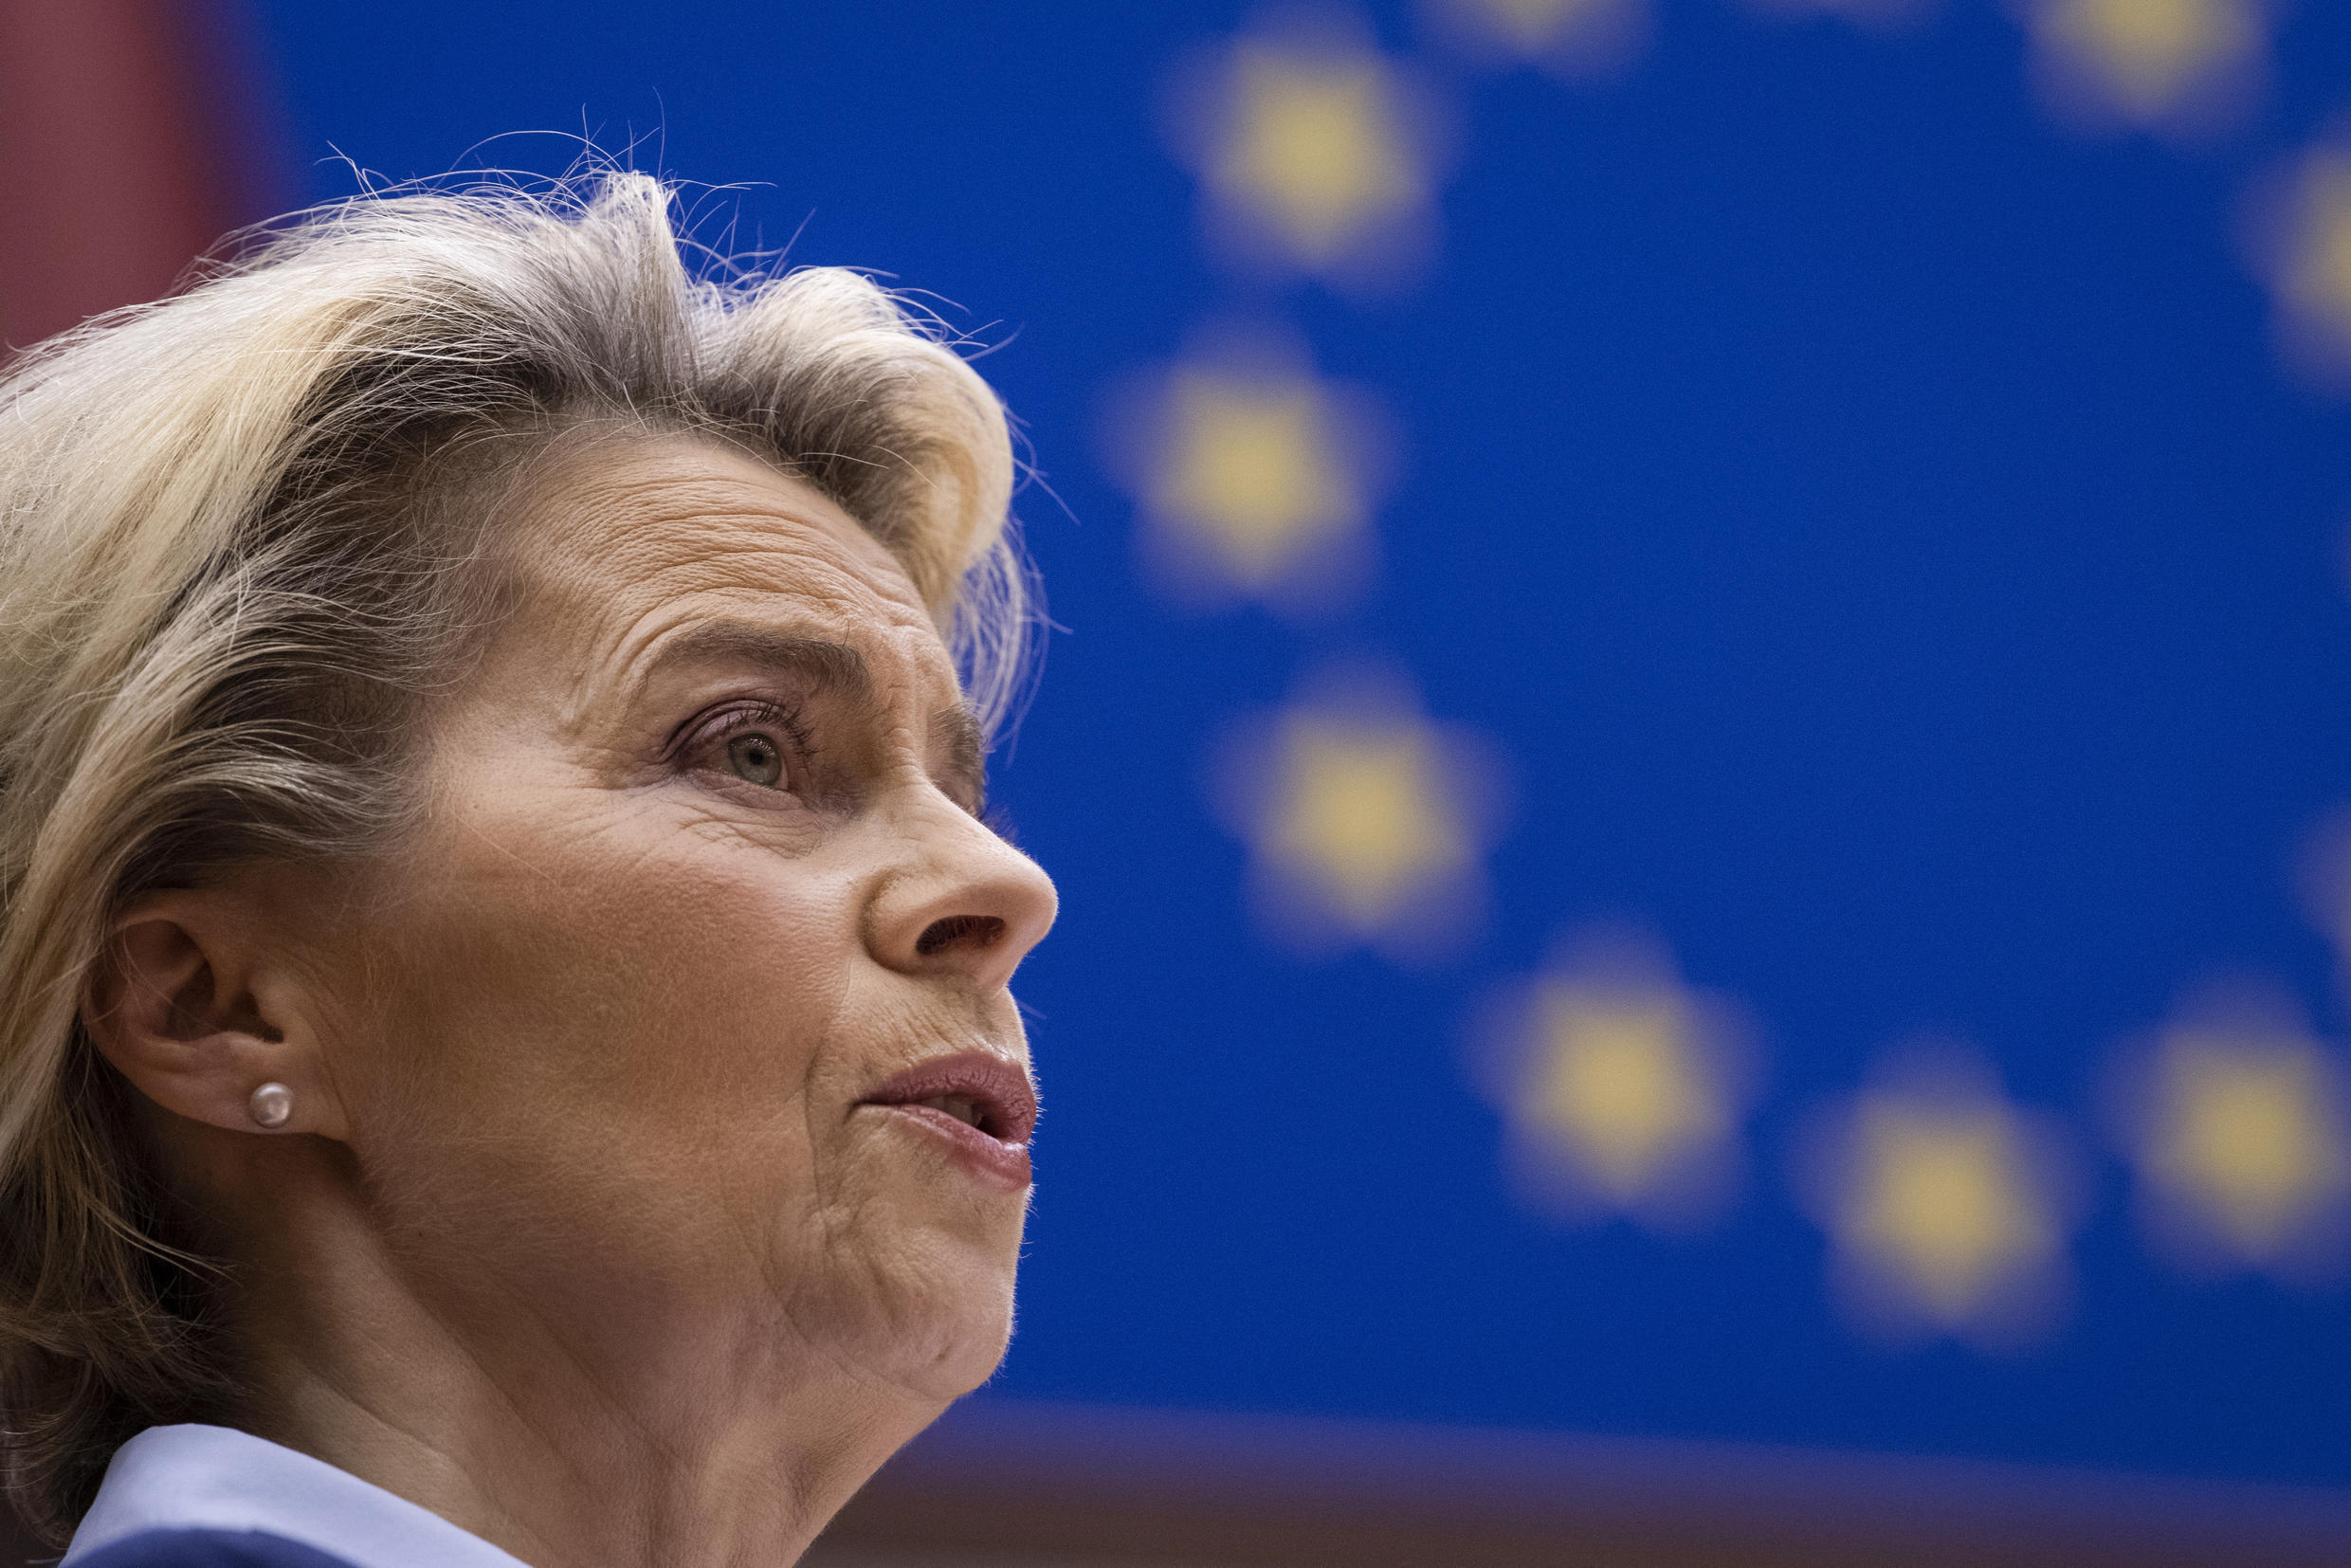 European Commission President Ursula von der Leyen addresses MEPs during a plenary session at the European Parliament in Brussels on December 16, 2020.